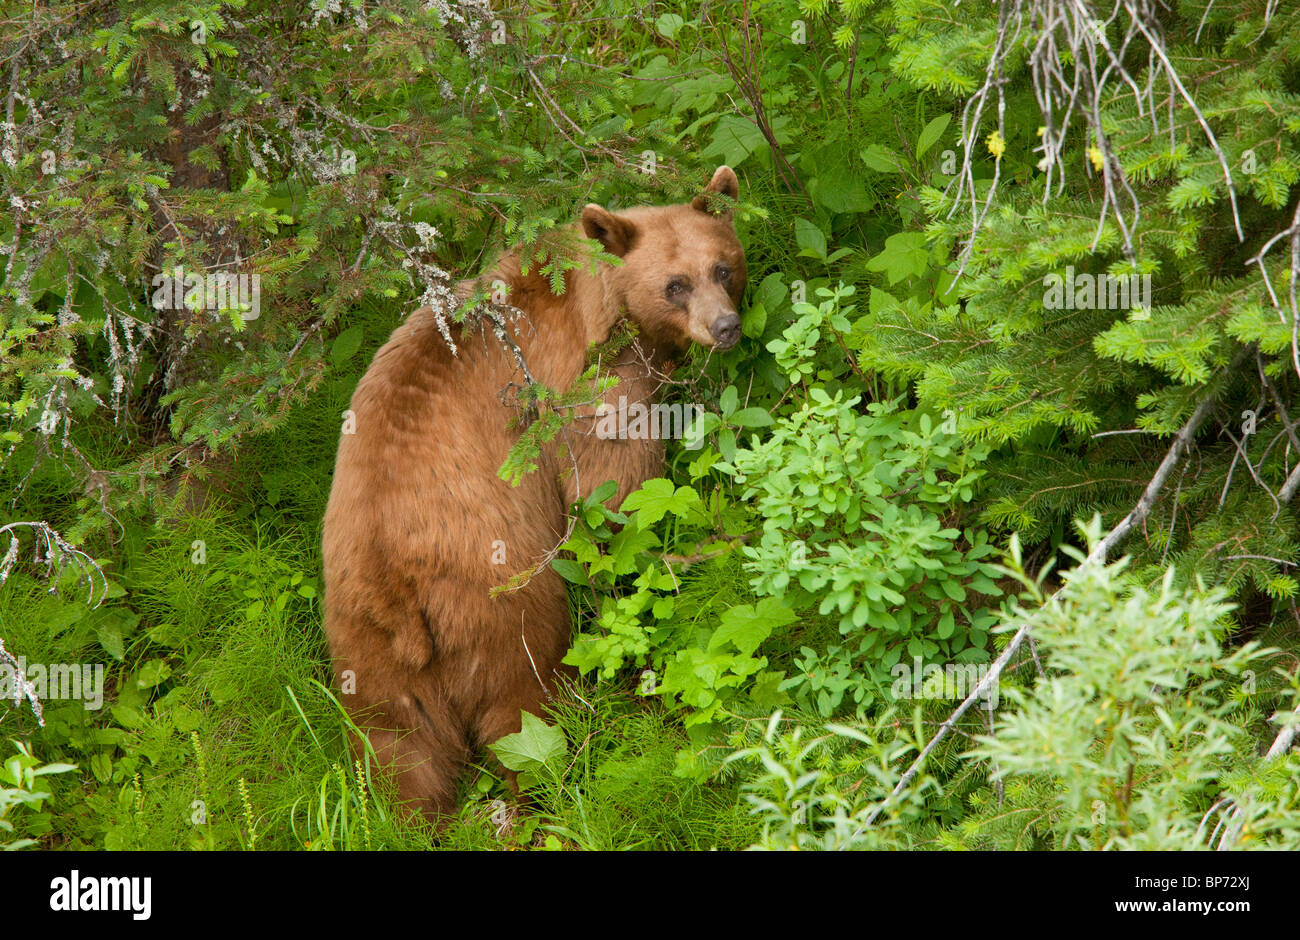 Grizzly Bear, Ursus arctos horribilis, female in woodland, Waterton NP, Rockies, Canada - Stock Image